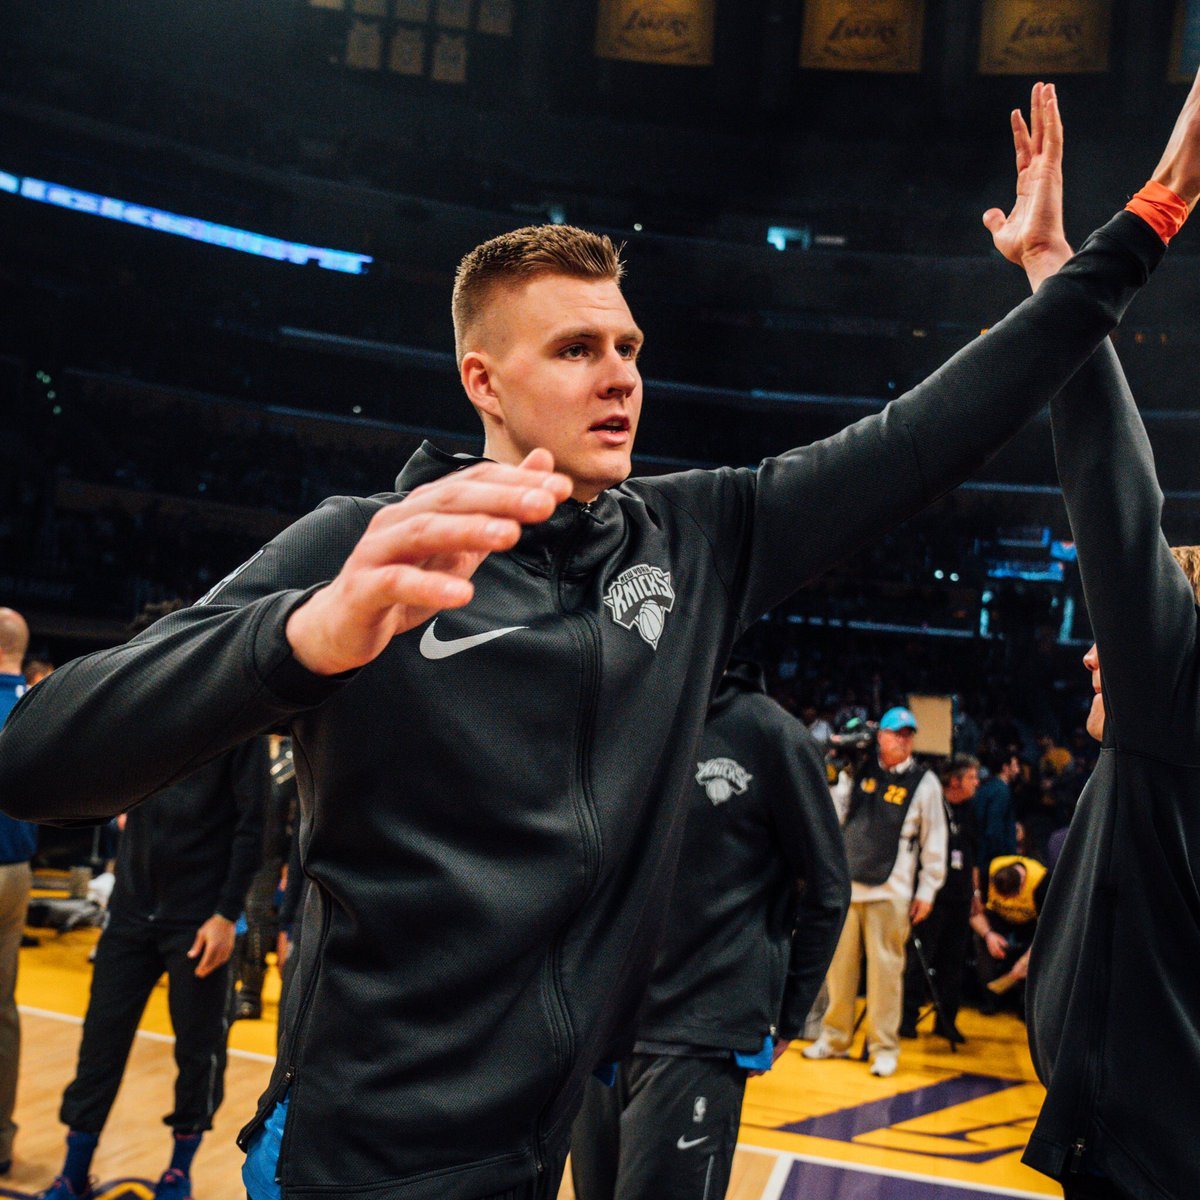 RT @kporzee: Just a kid from Latvia... https://t.co/NTQLIQN9JT